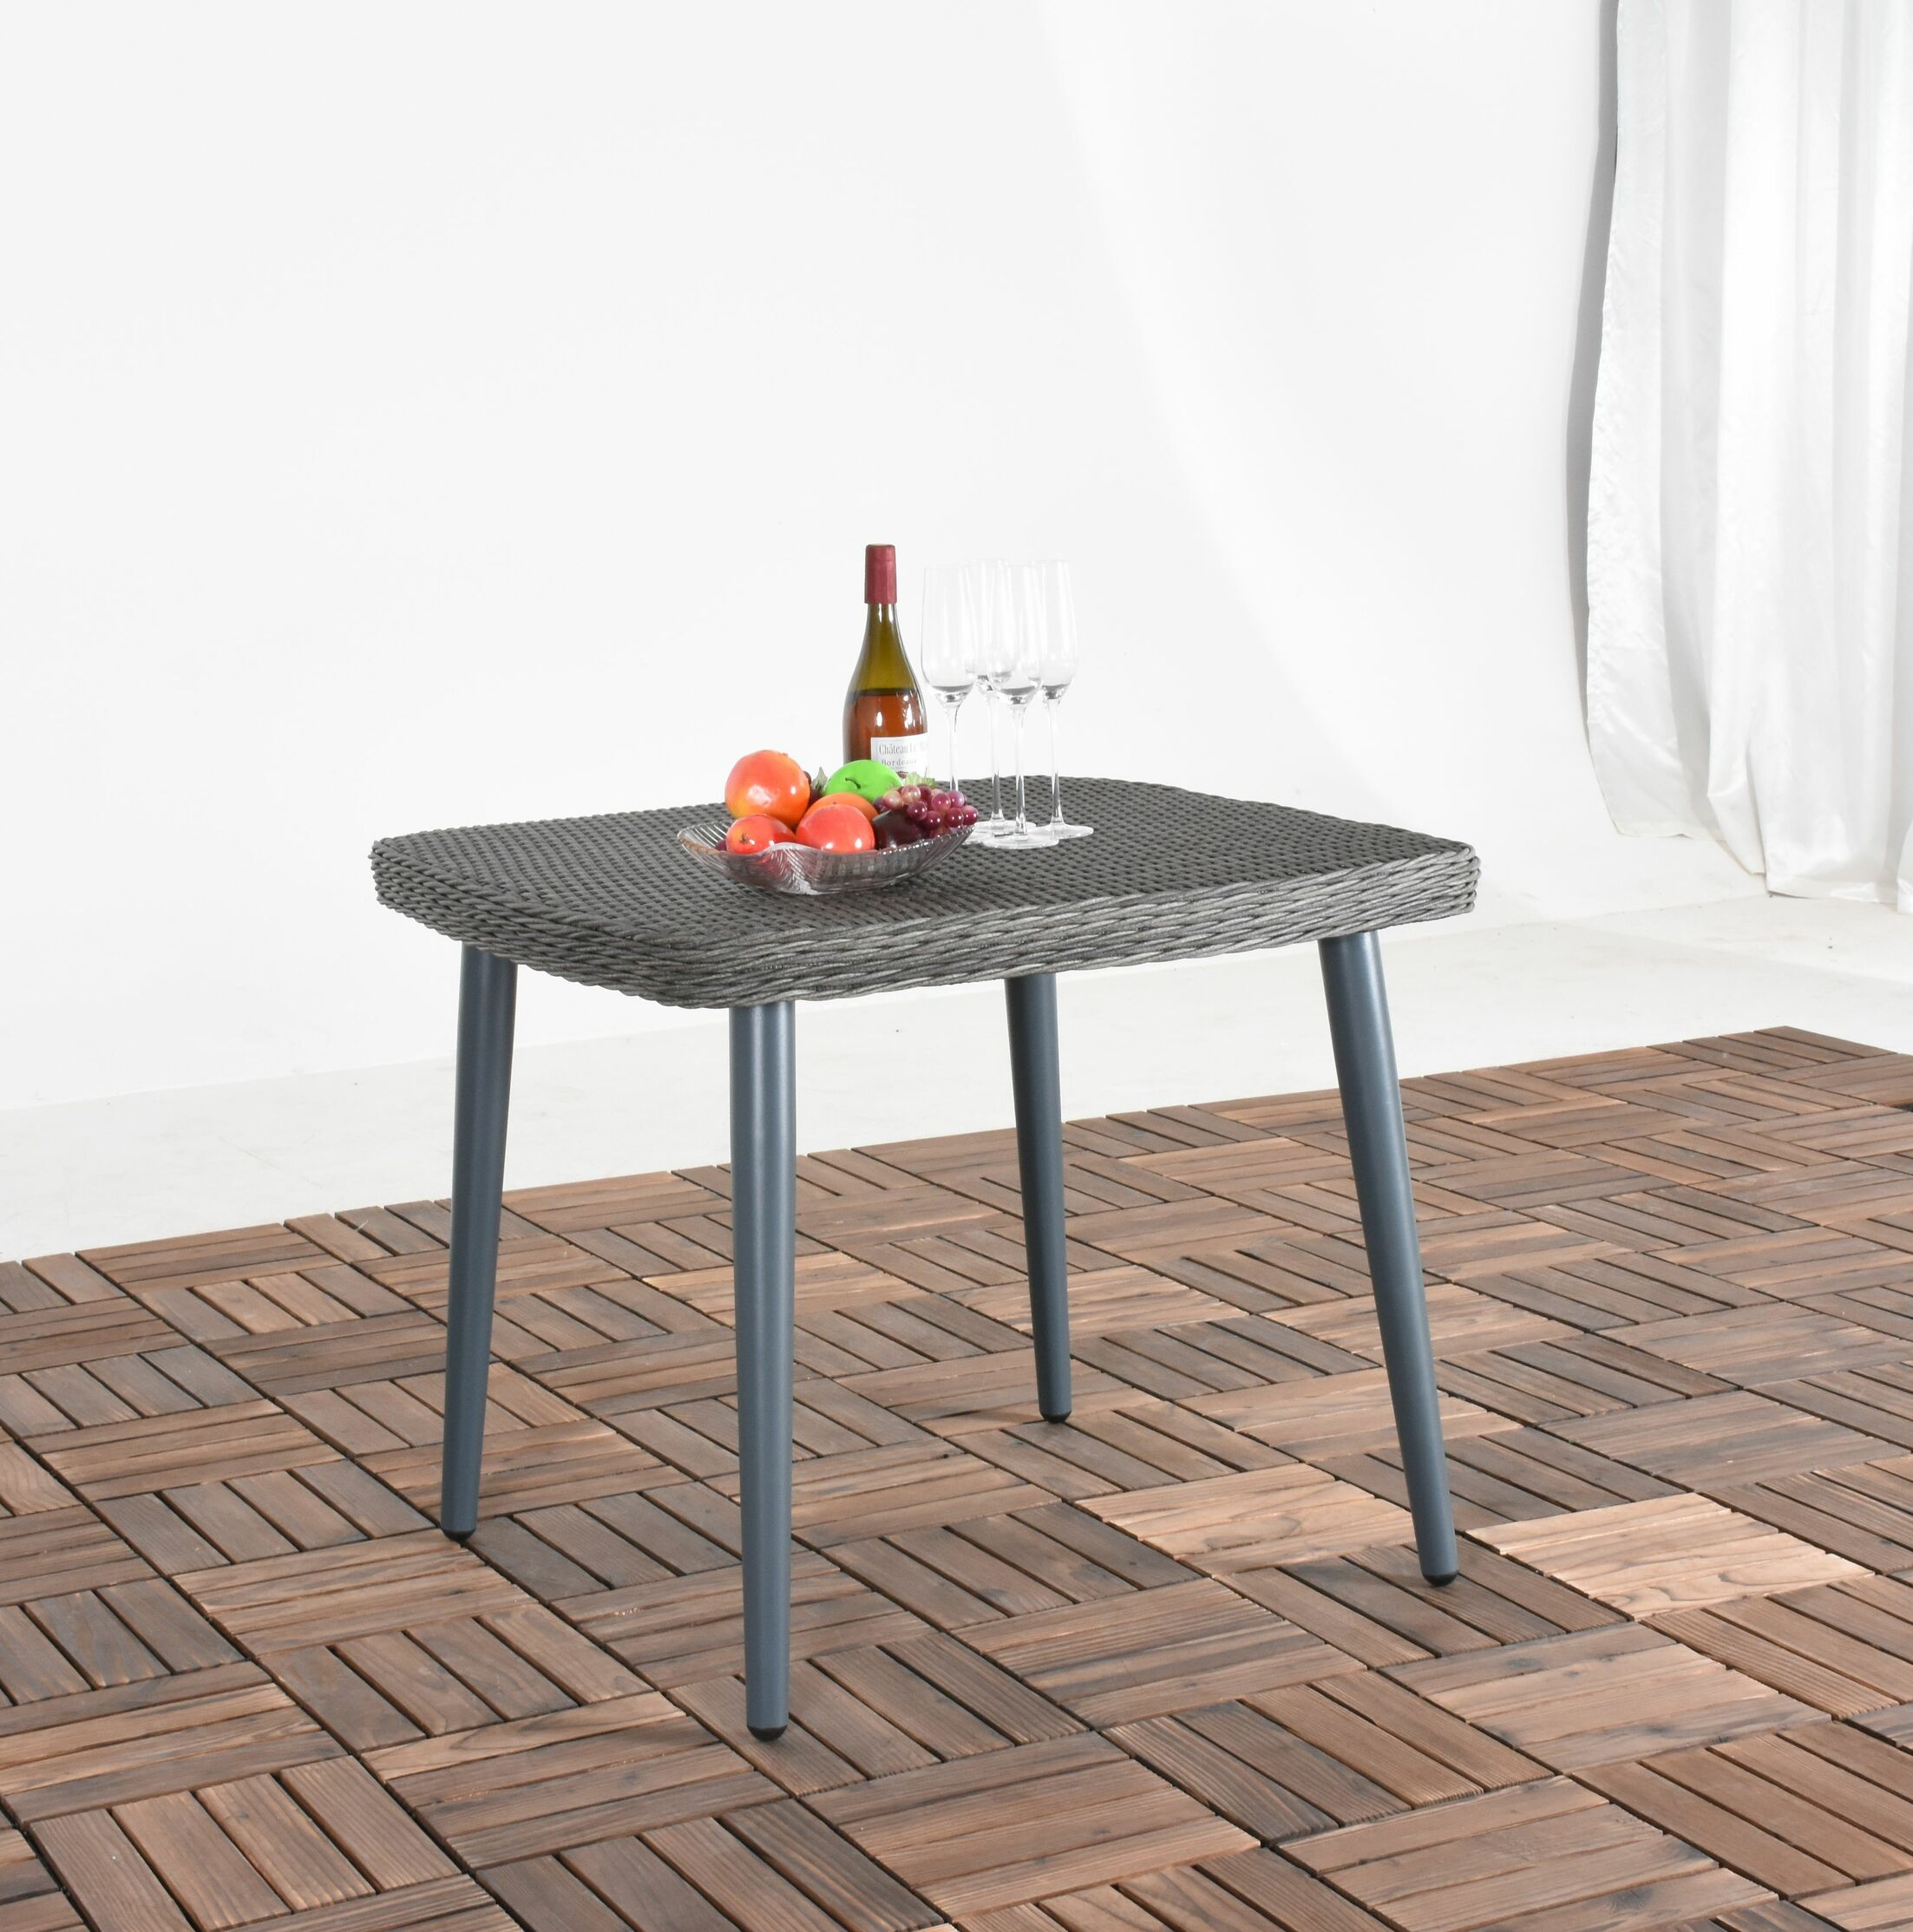 Rutha Square Wicker Dining Table